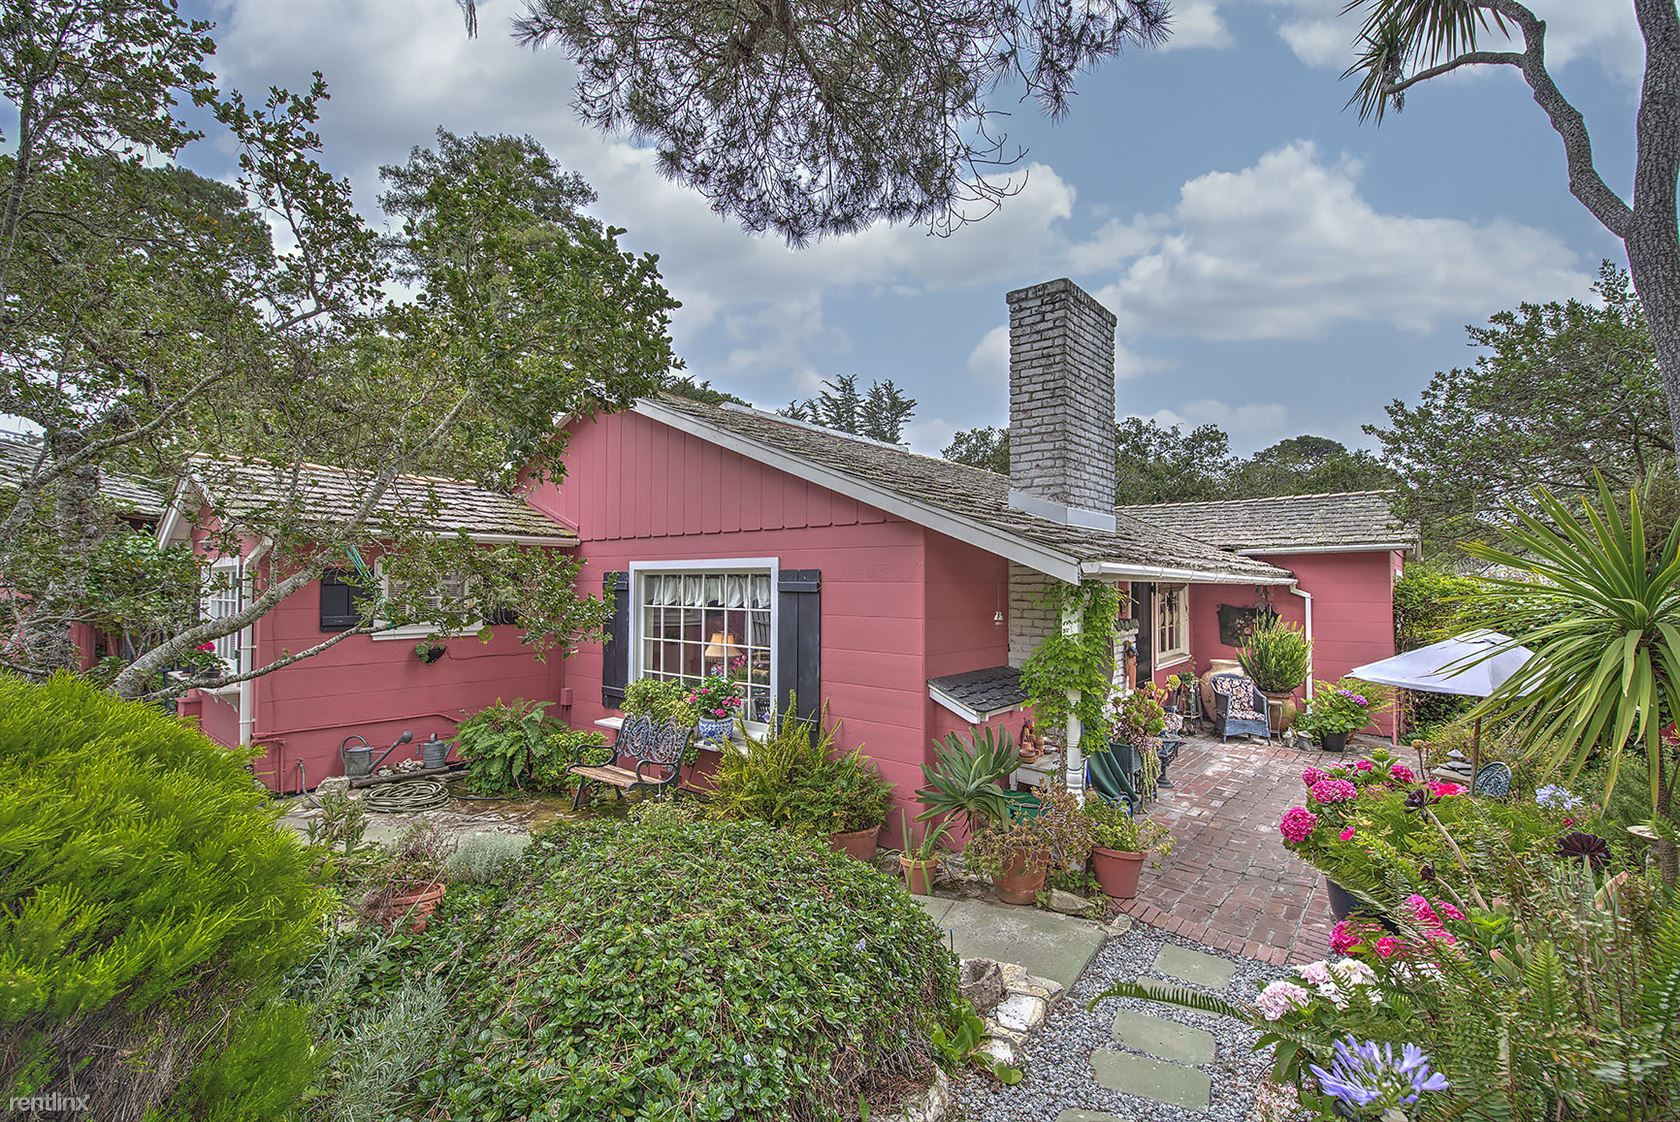 Sterling Way 2 SE of Perry Newberry, Carmel-by-the-Sea, CA - $5,564